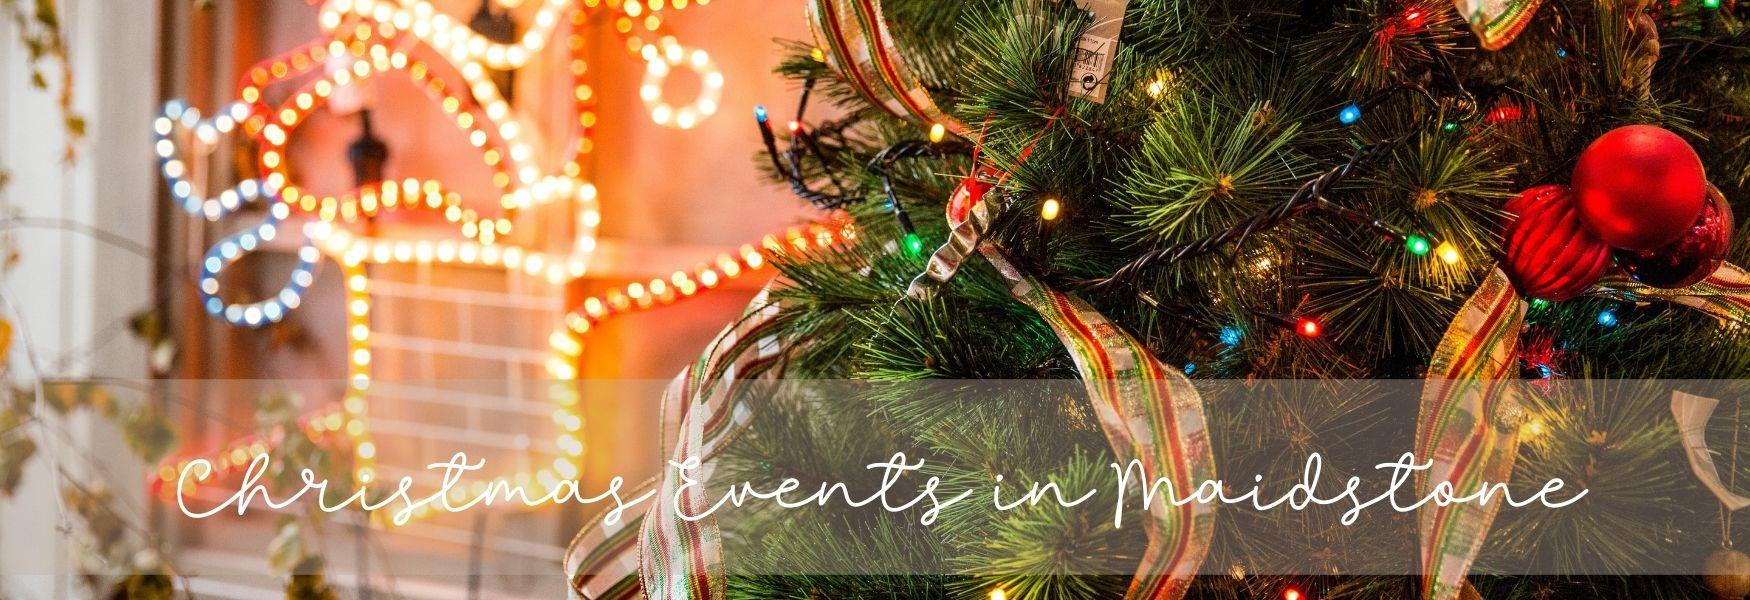 Christmas events in Maidstone